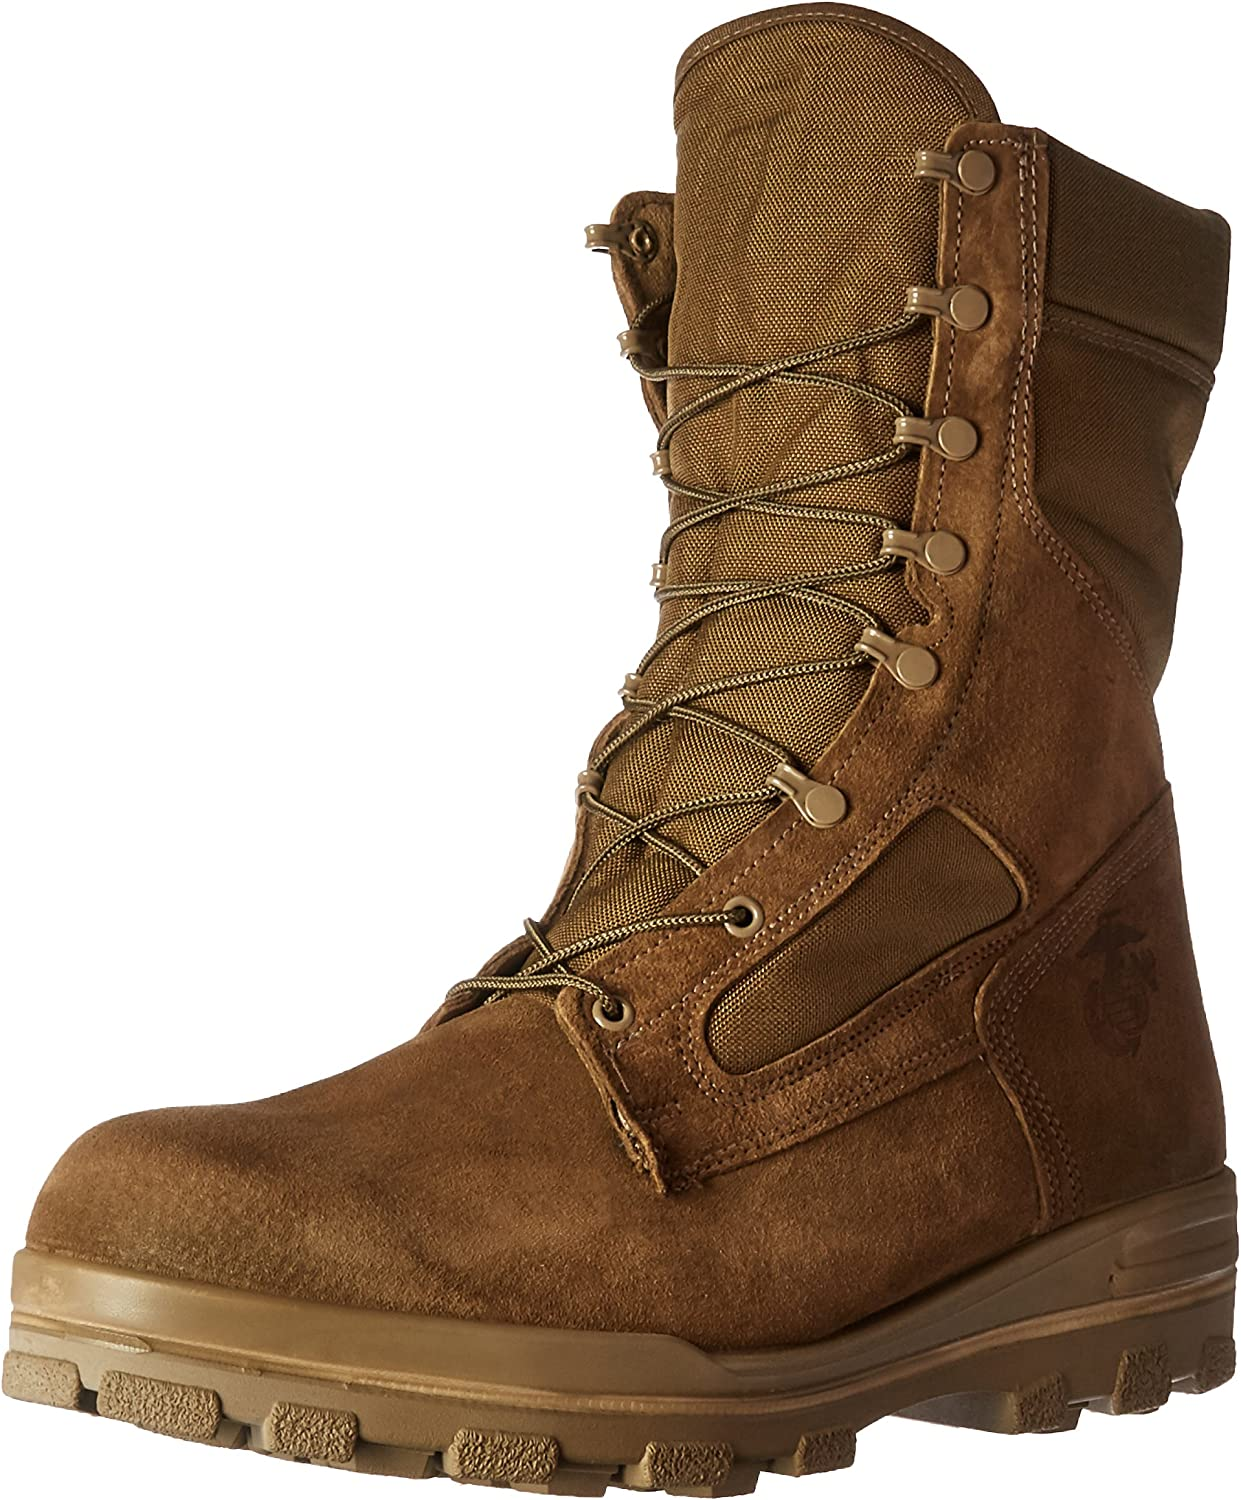 Bates Men's USMC DuraShock Sales of SALE items from new works Hot Boot Special price Tactical Military Weather